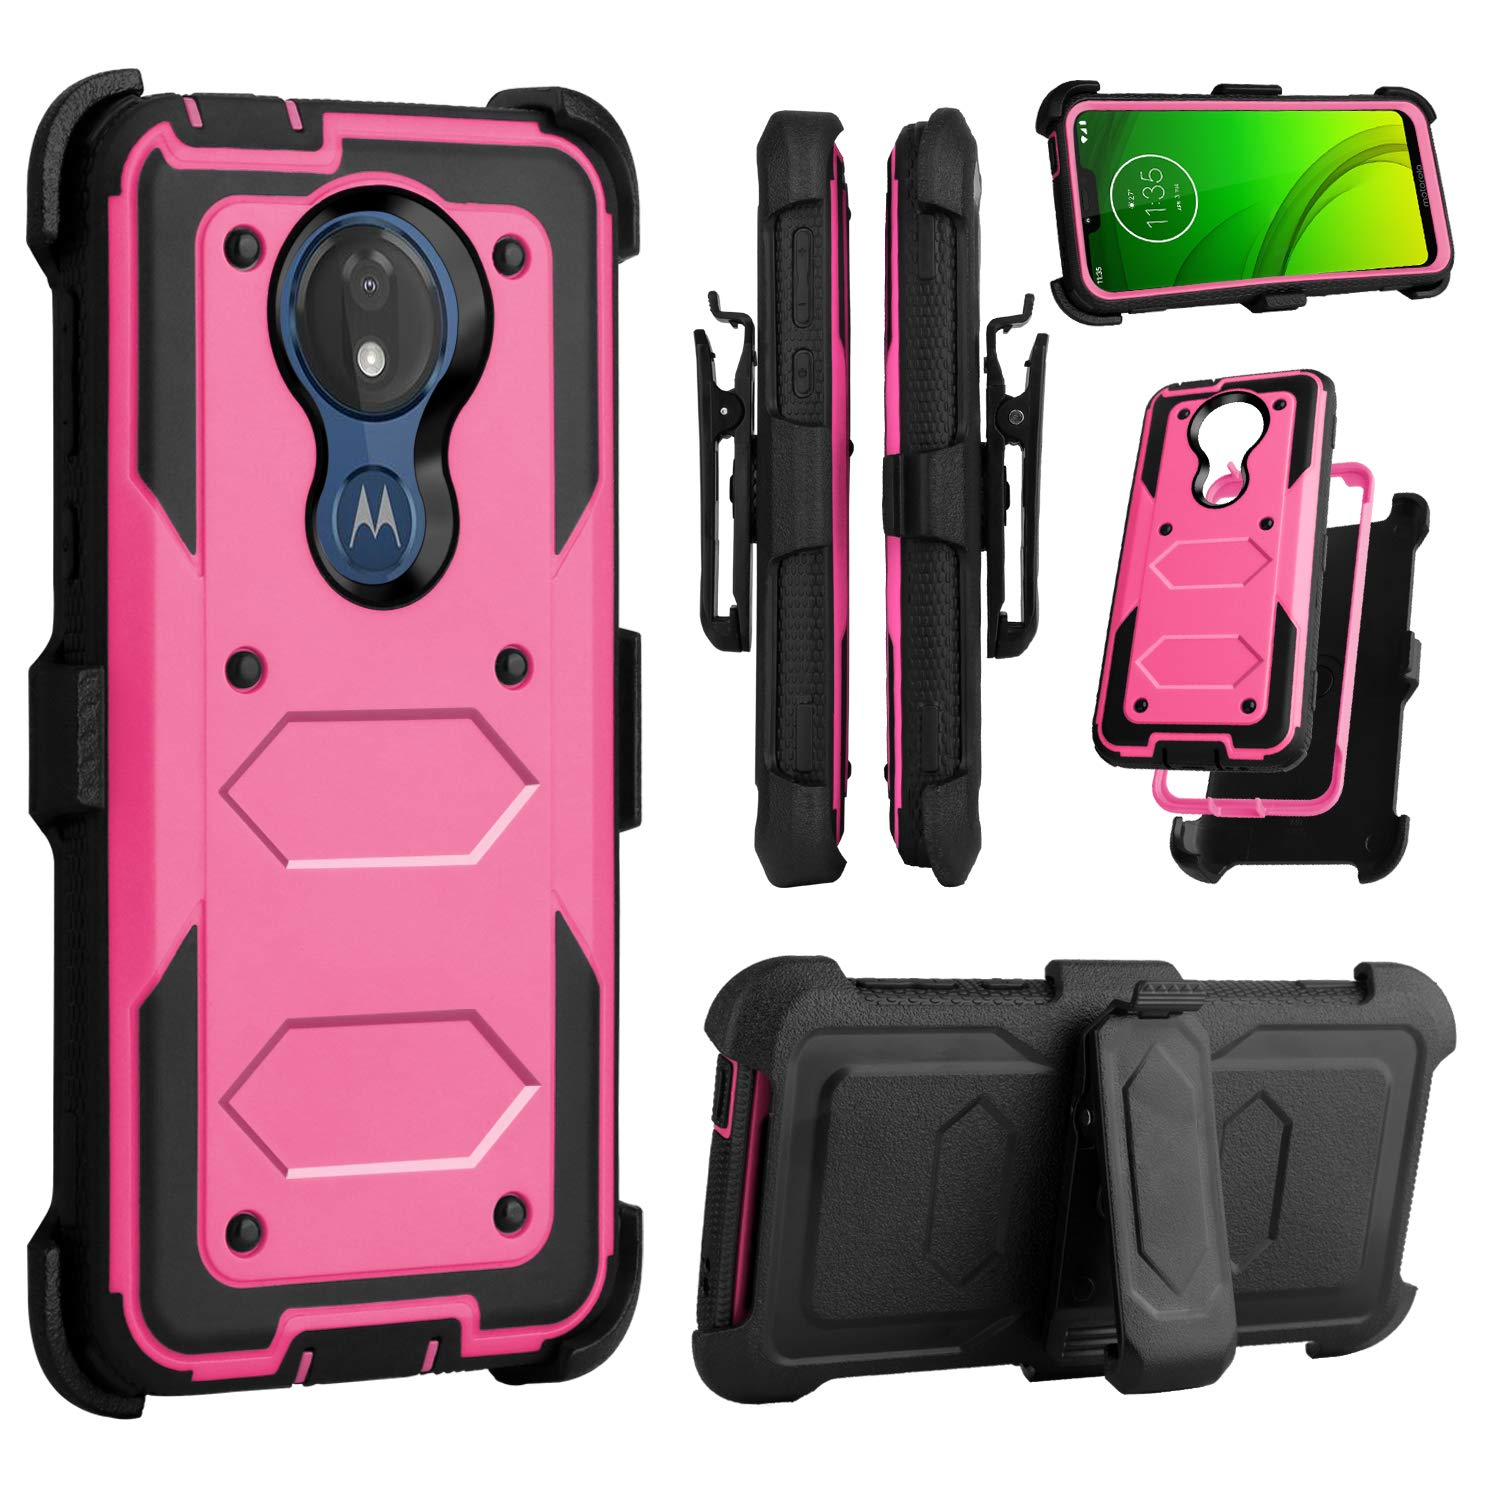 Funda para Moto G7 Power Con Pie VENORO (7P6HQ1KX)